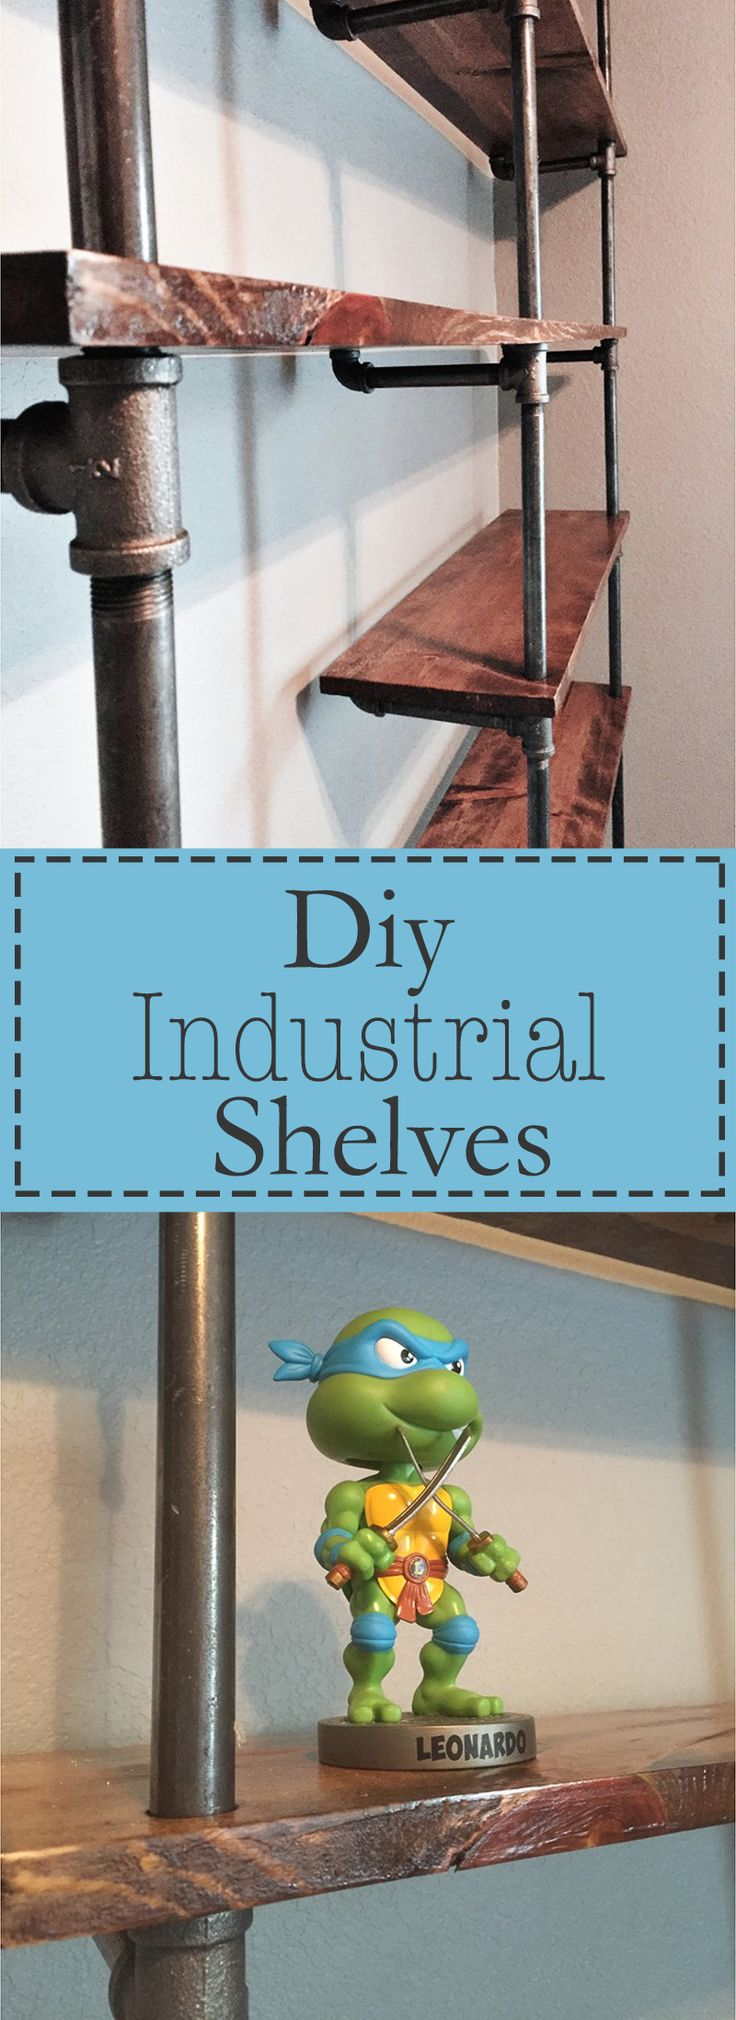 How To Make Industrial Furniture #34: Step-by-step Diy Tutorial On How To Make Industrial Pipe Shelves. These